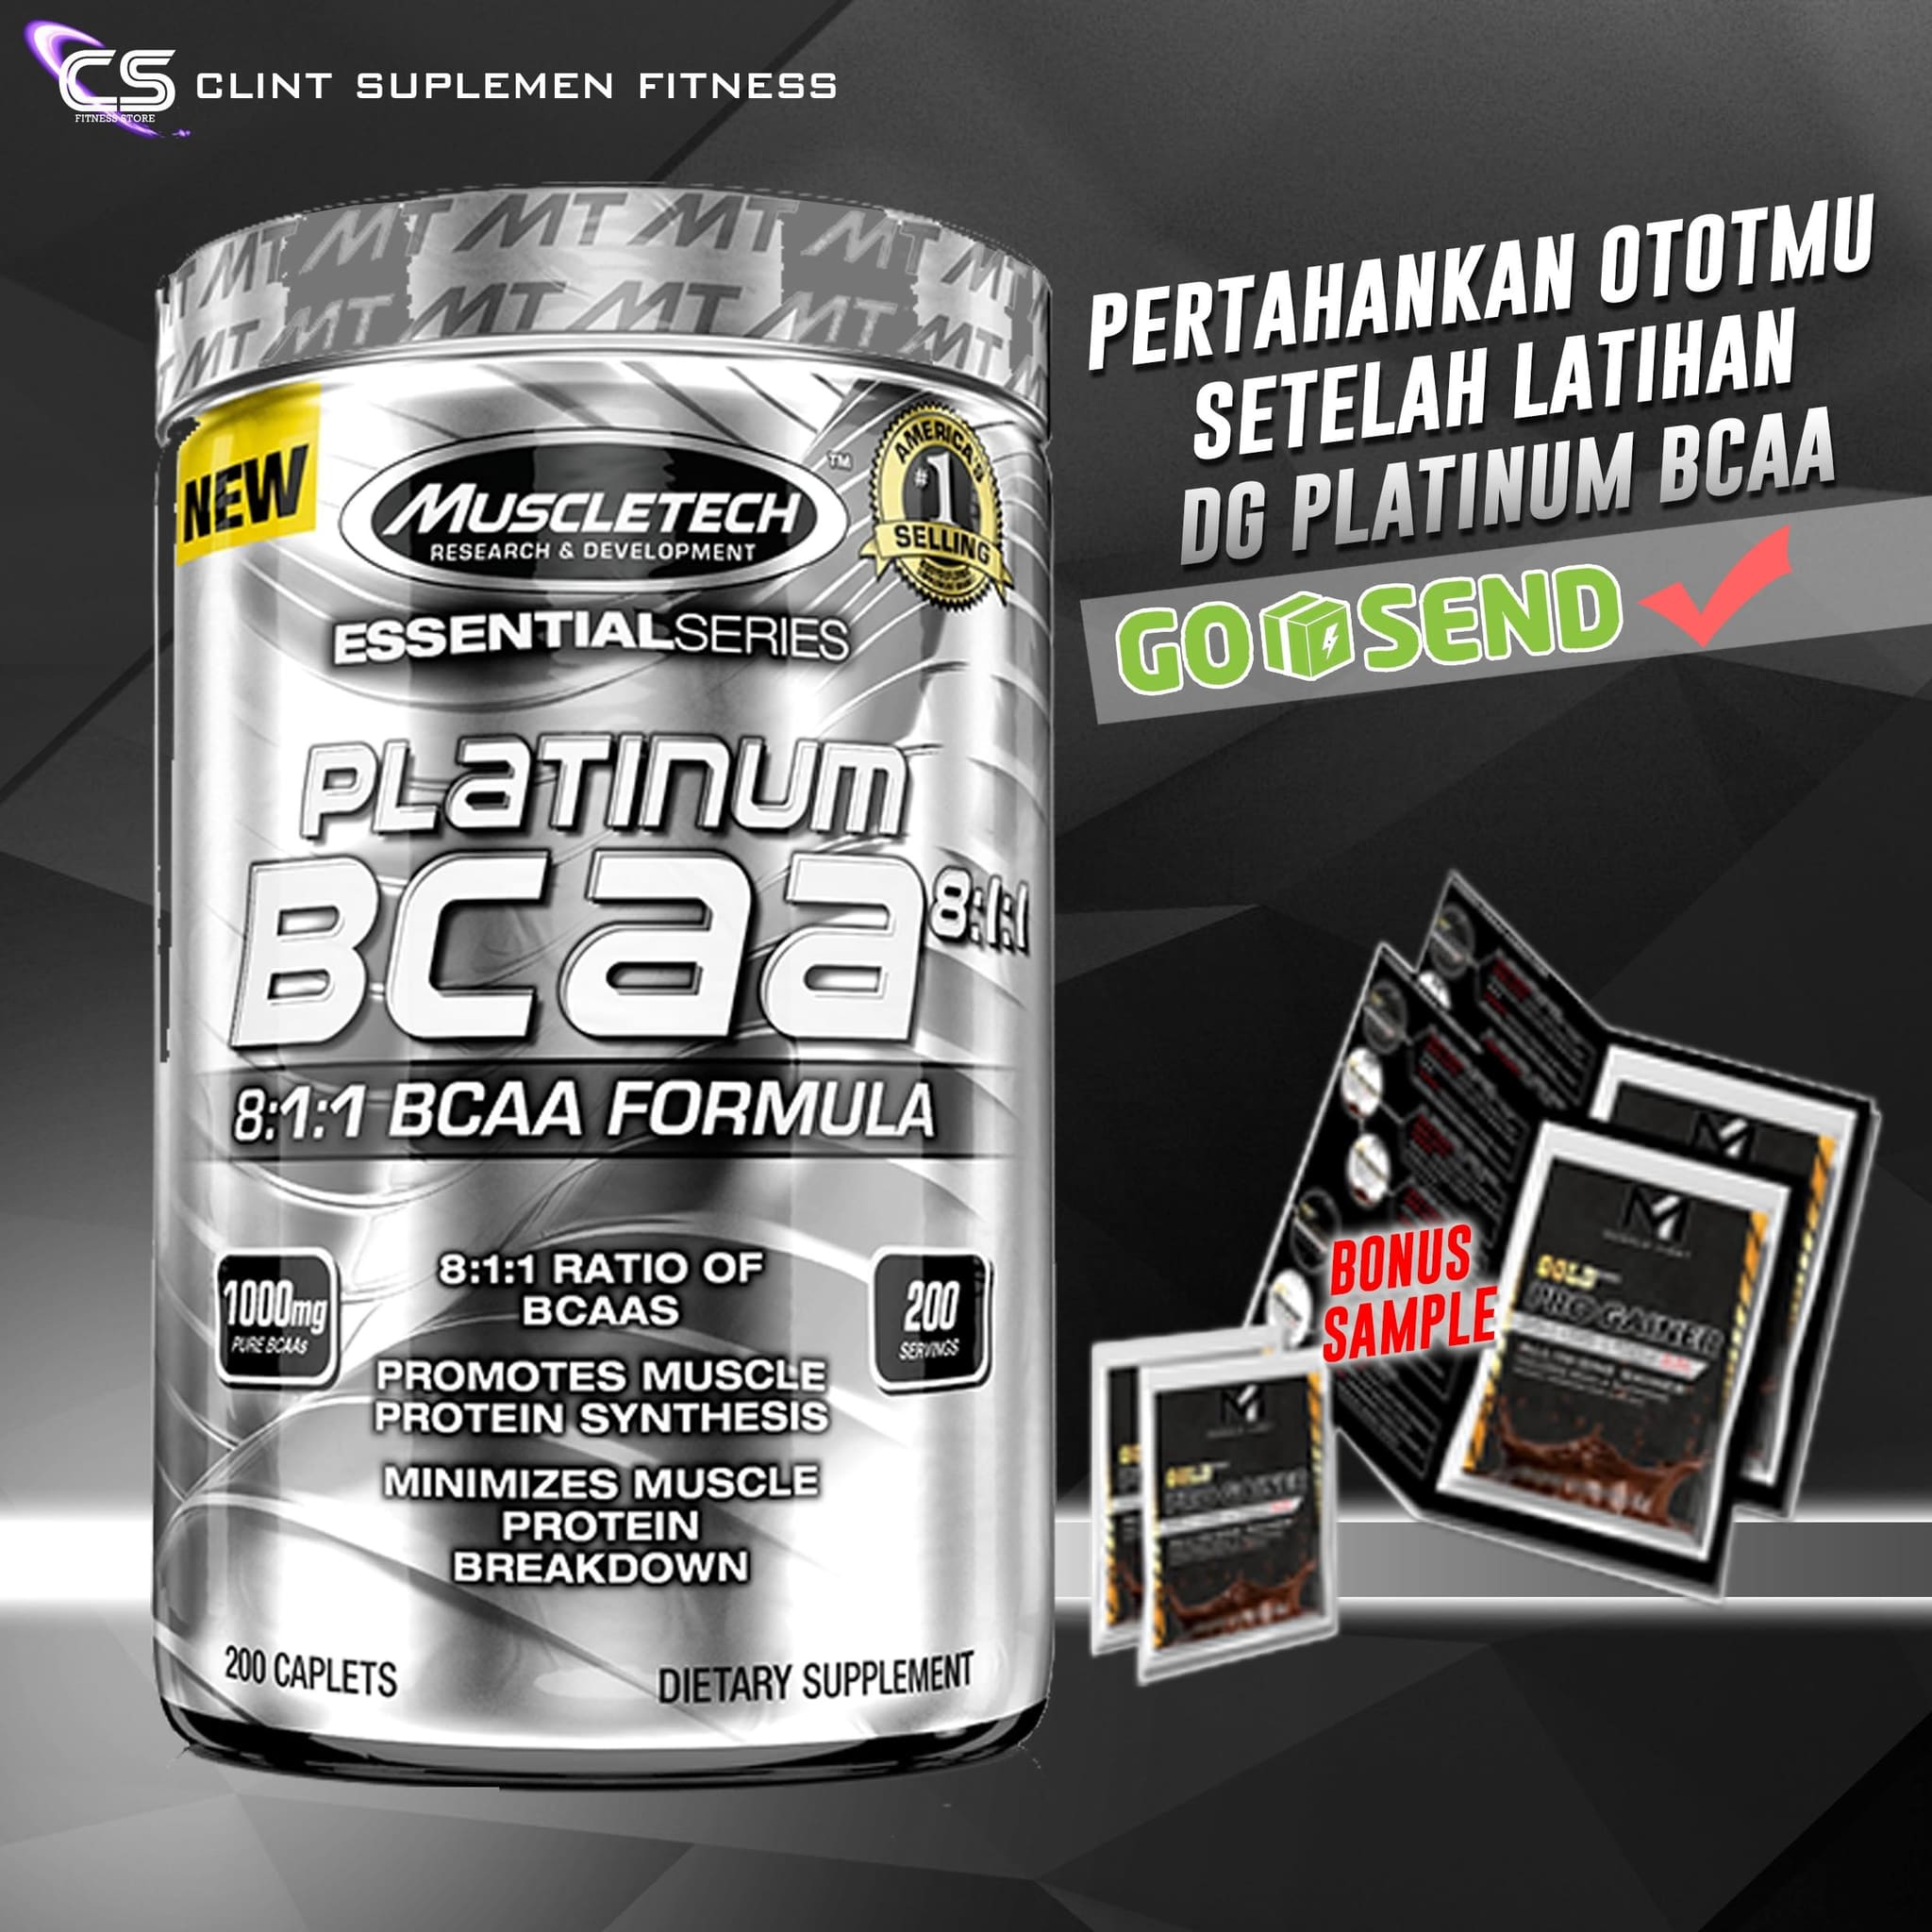 Dymatize Nutrition Bcaa Complex 2200 400 Kaplet Referensi Daftar Bpom Aom Met Rx 180 Softgel Harga Metrx Softgels Source Muscletech Platinum 811 200 Caps Clint Suplemen Fitness Tokopedia